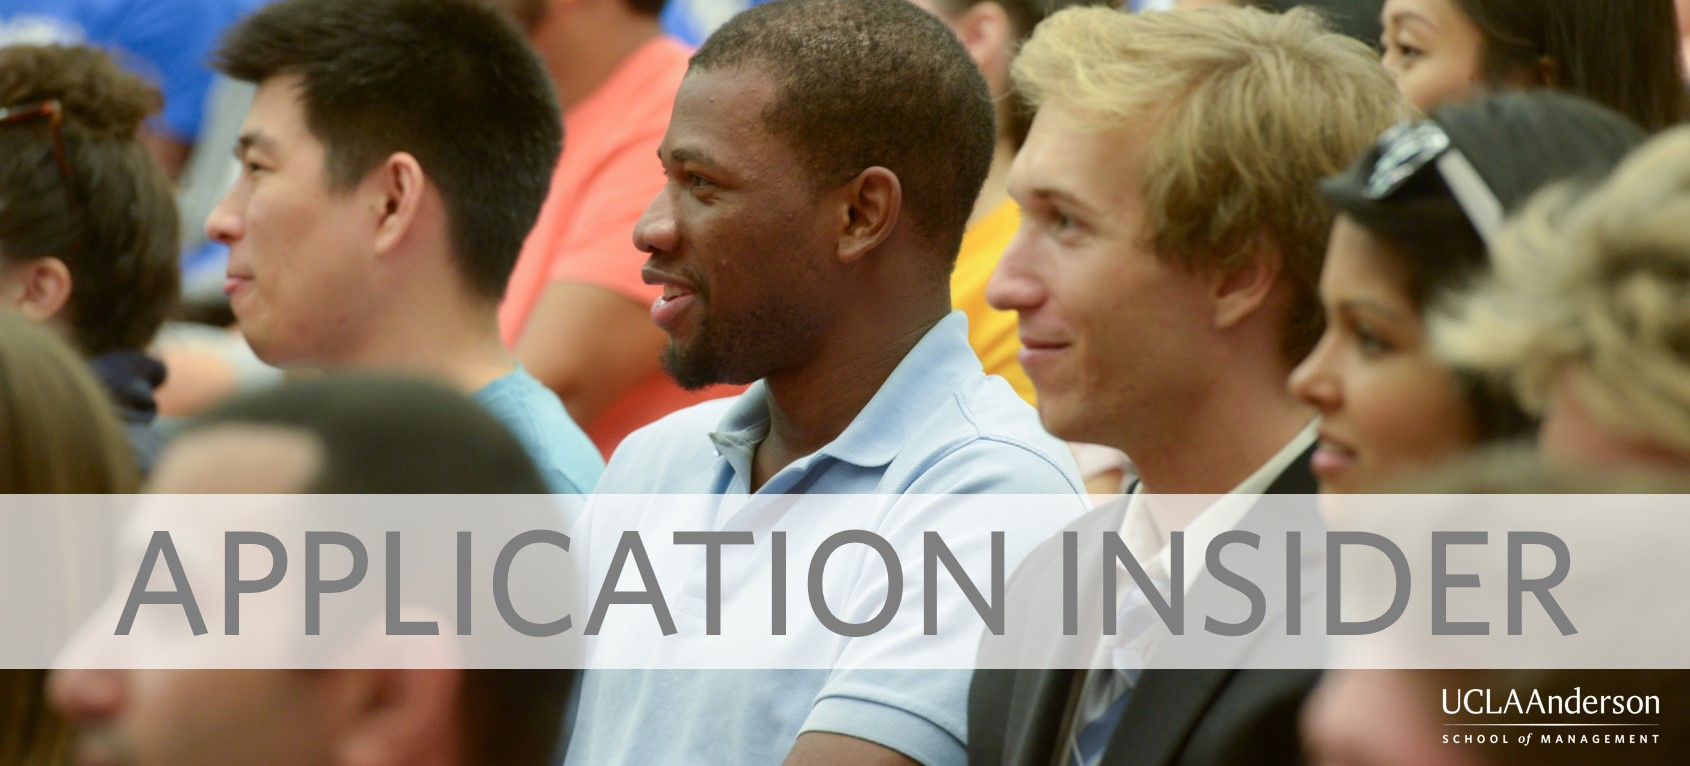 ucla anderson application insider essays the mba insider s blog applicationinsider header